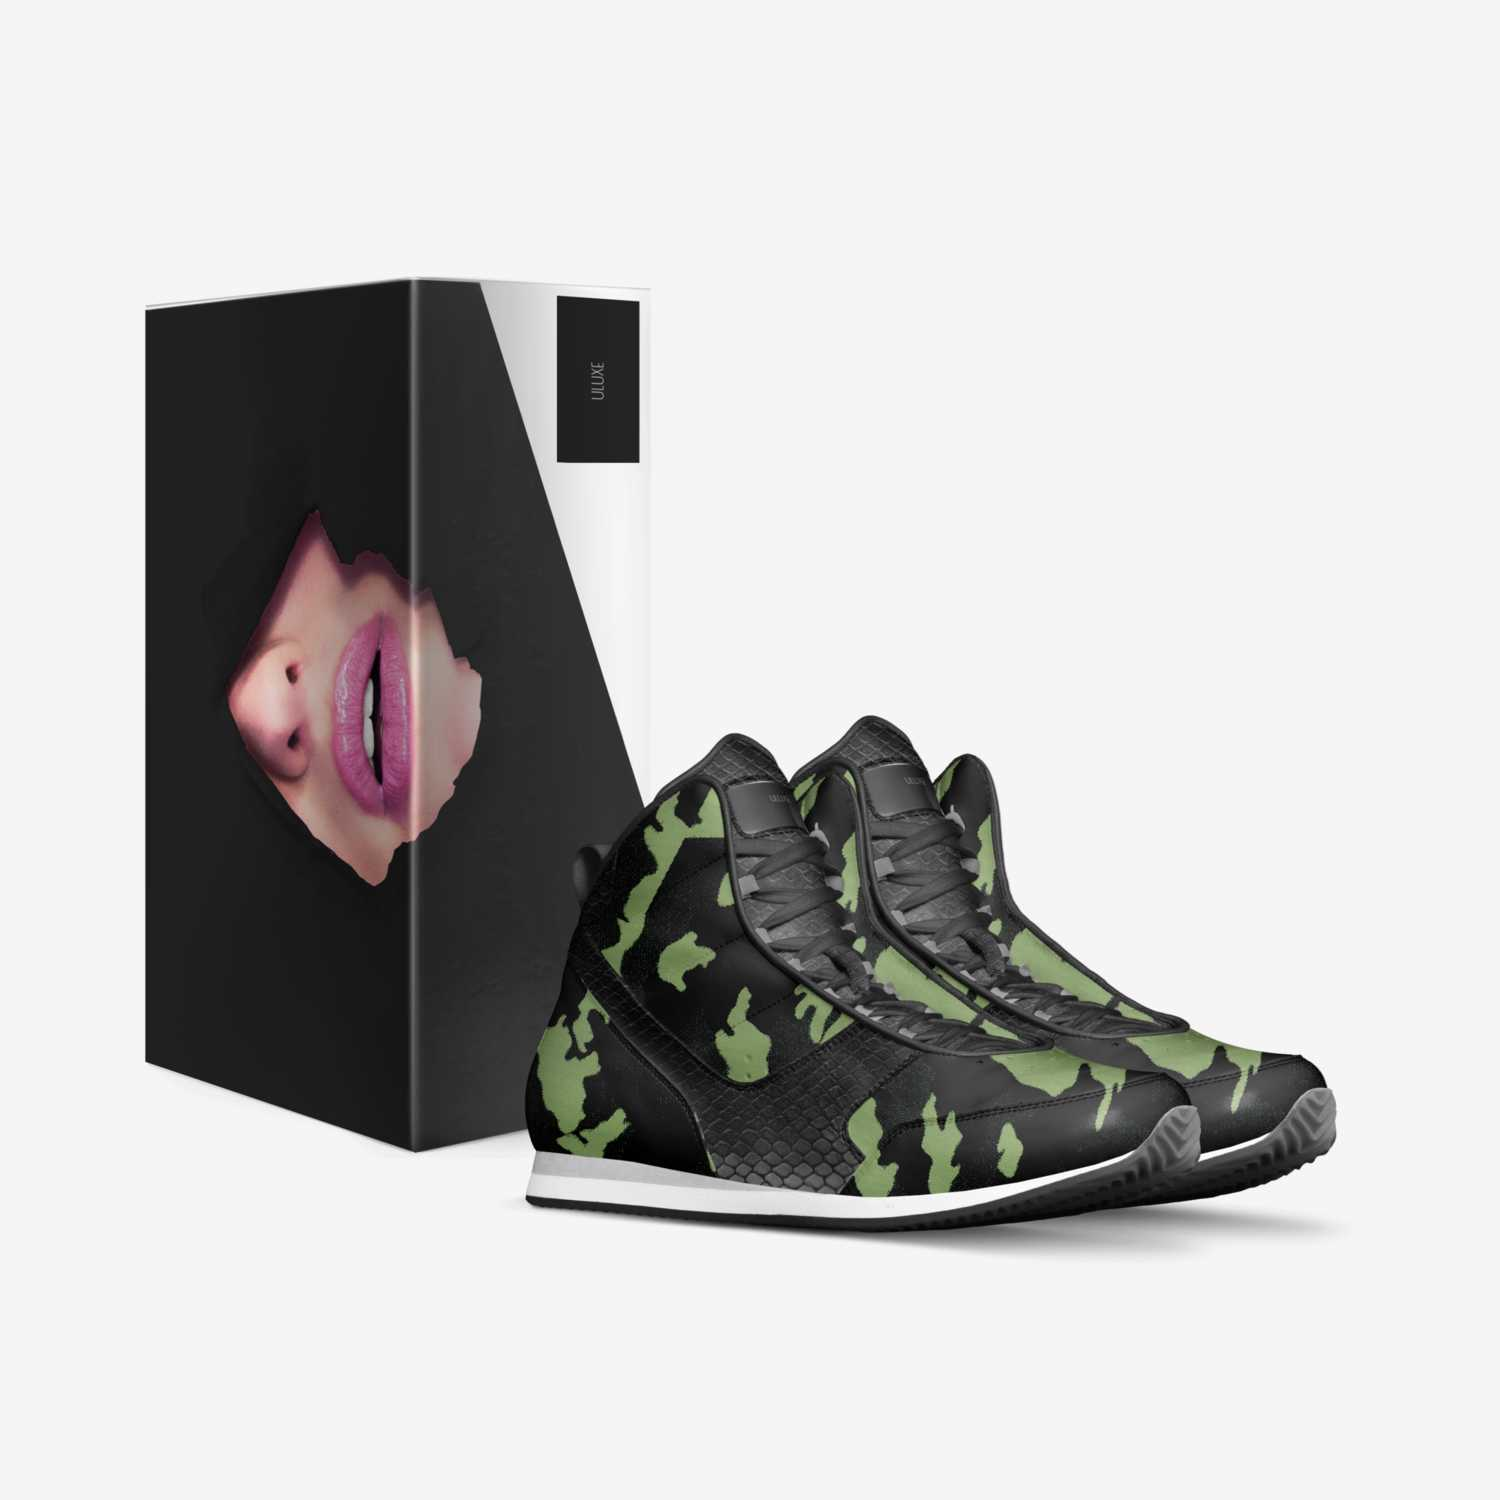 ULuxe custom made in Italy shoes by Gretchen Negron   Box view